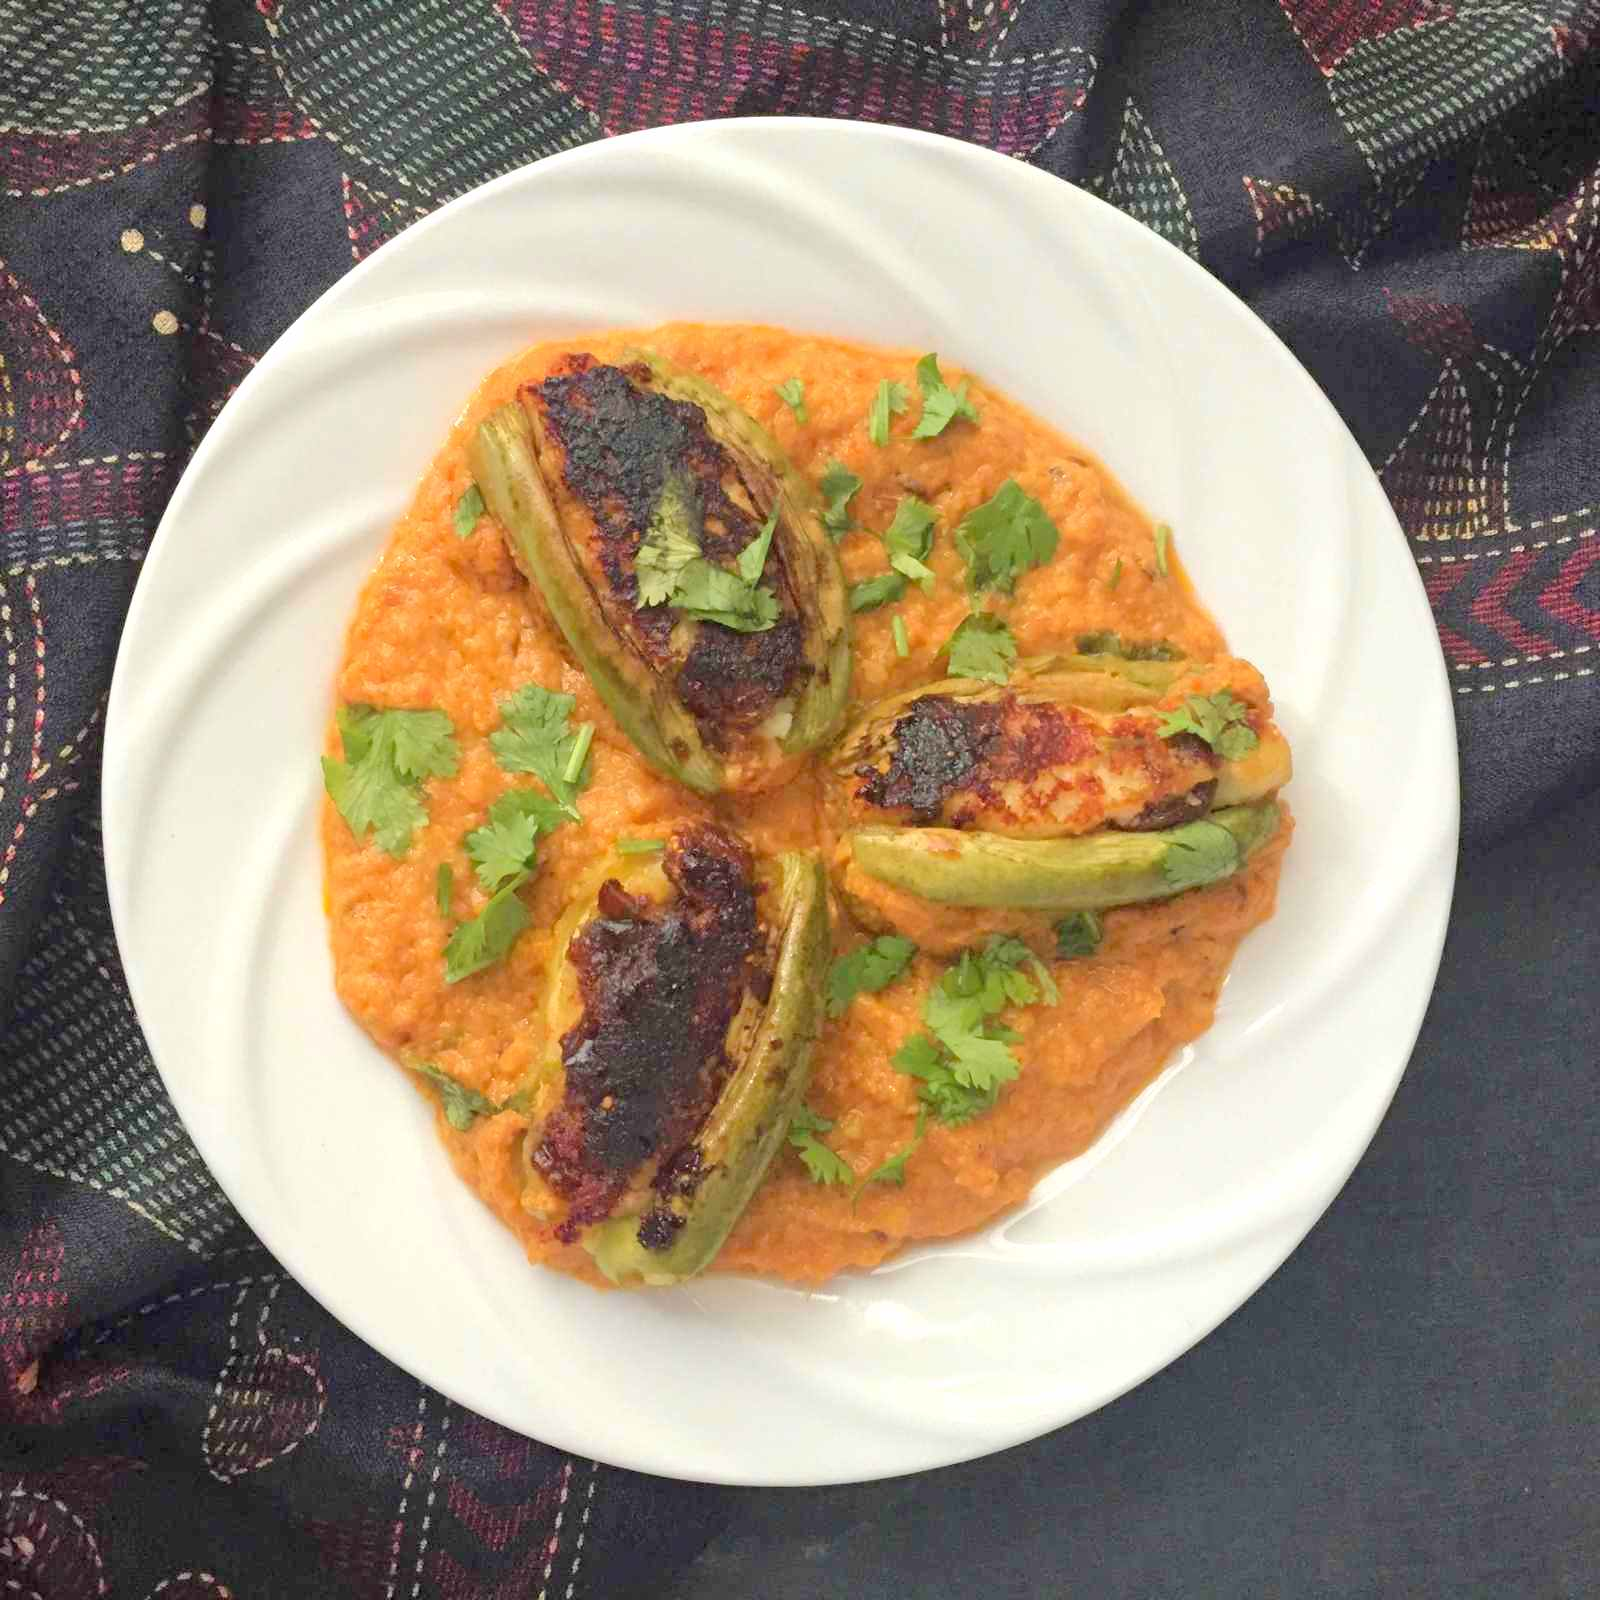 Potoler dolma recipe bengali style stuffed pointed gourd curry by potoler dolma recipe bengali style stuffed pointed gourd curry forumfinder Image collections